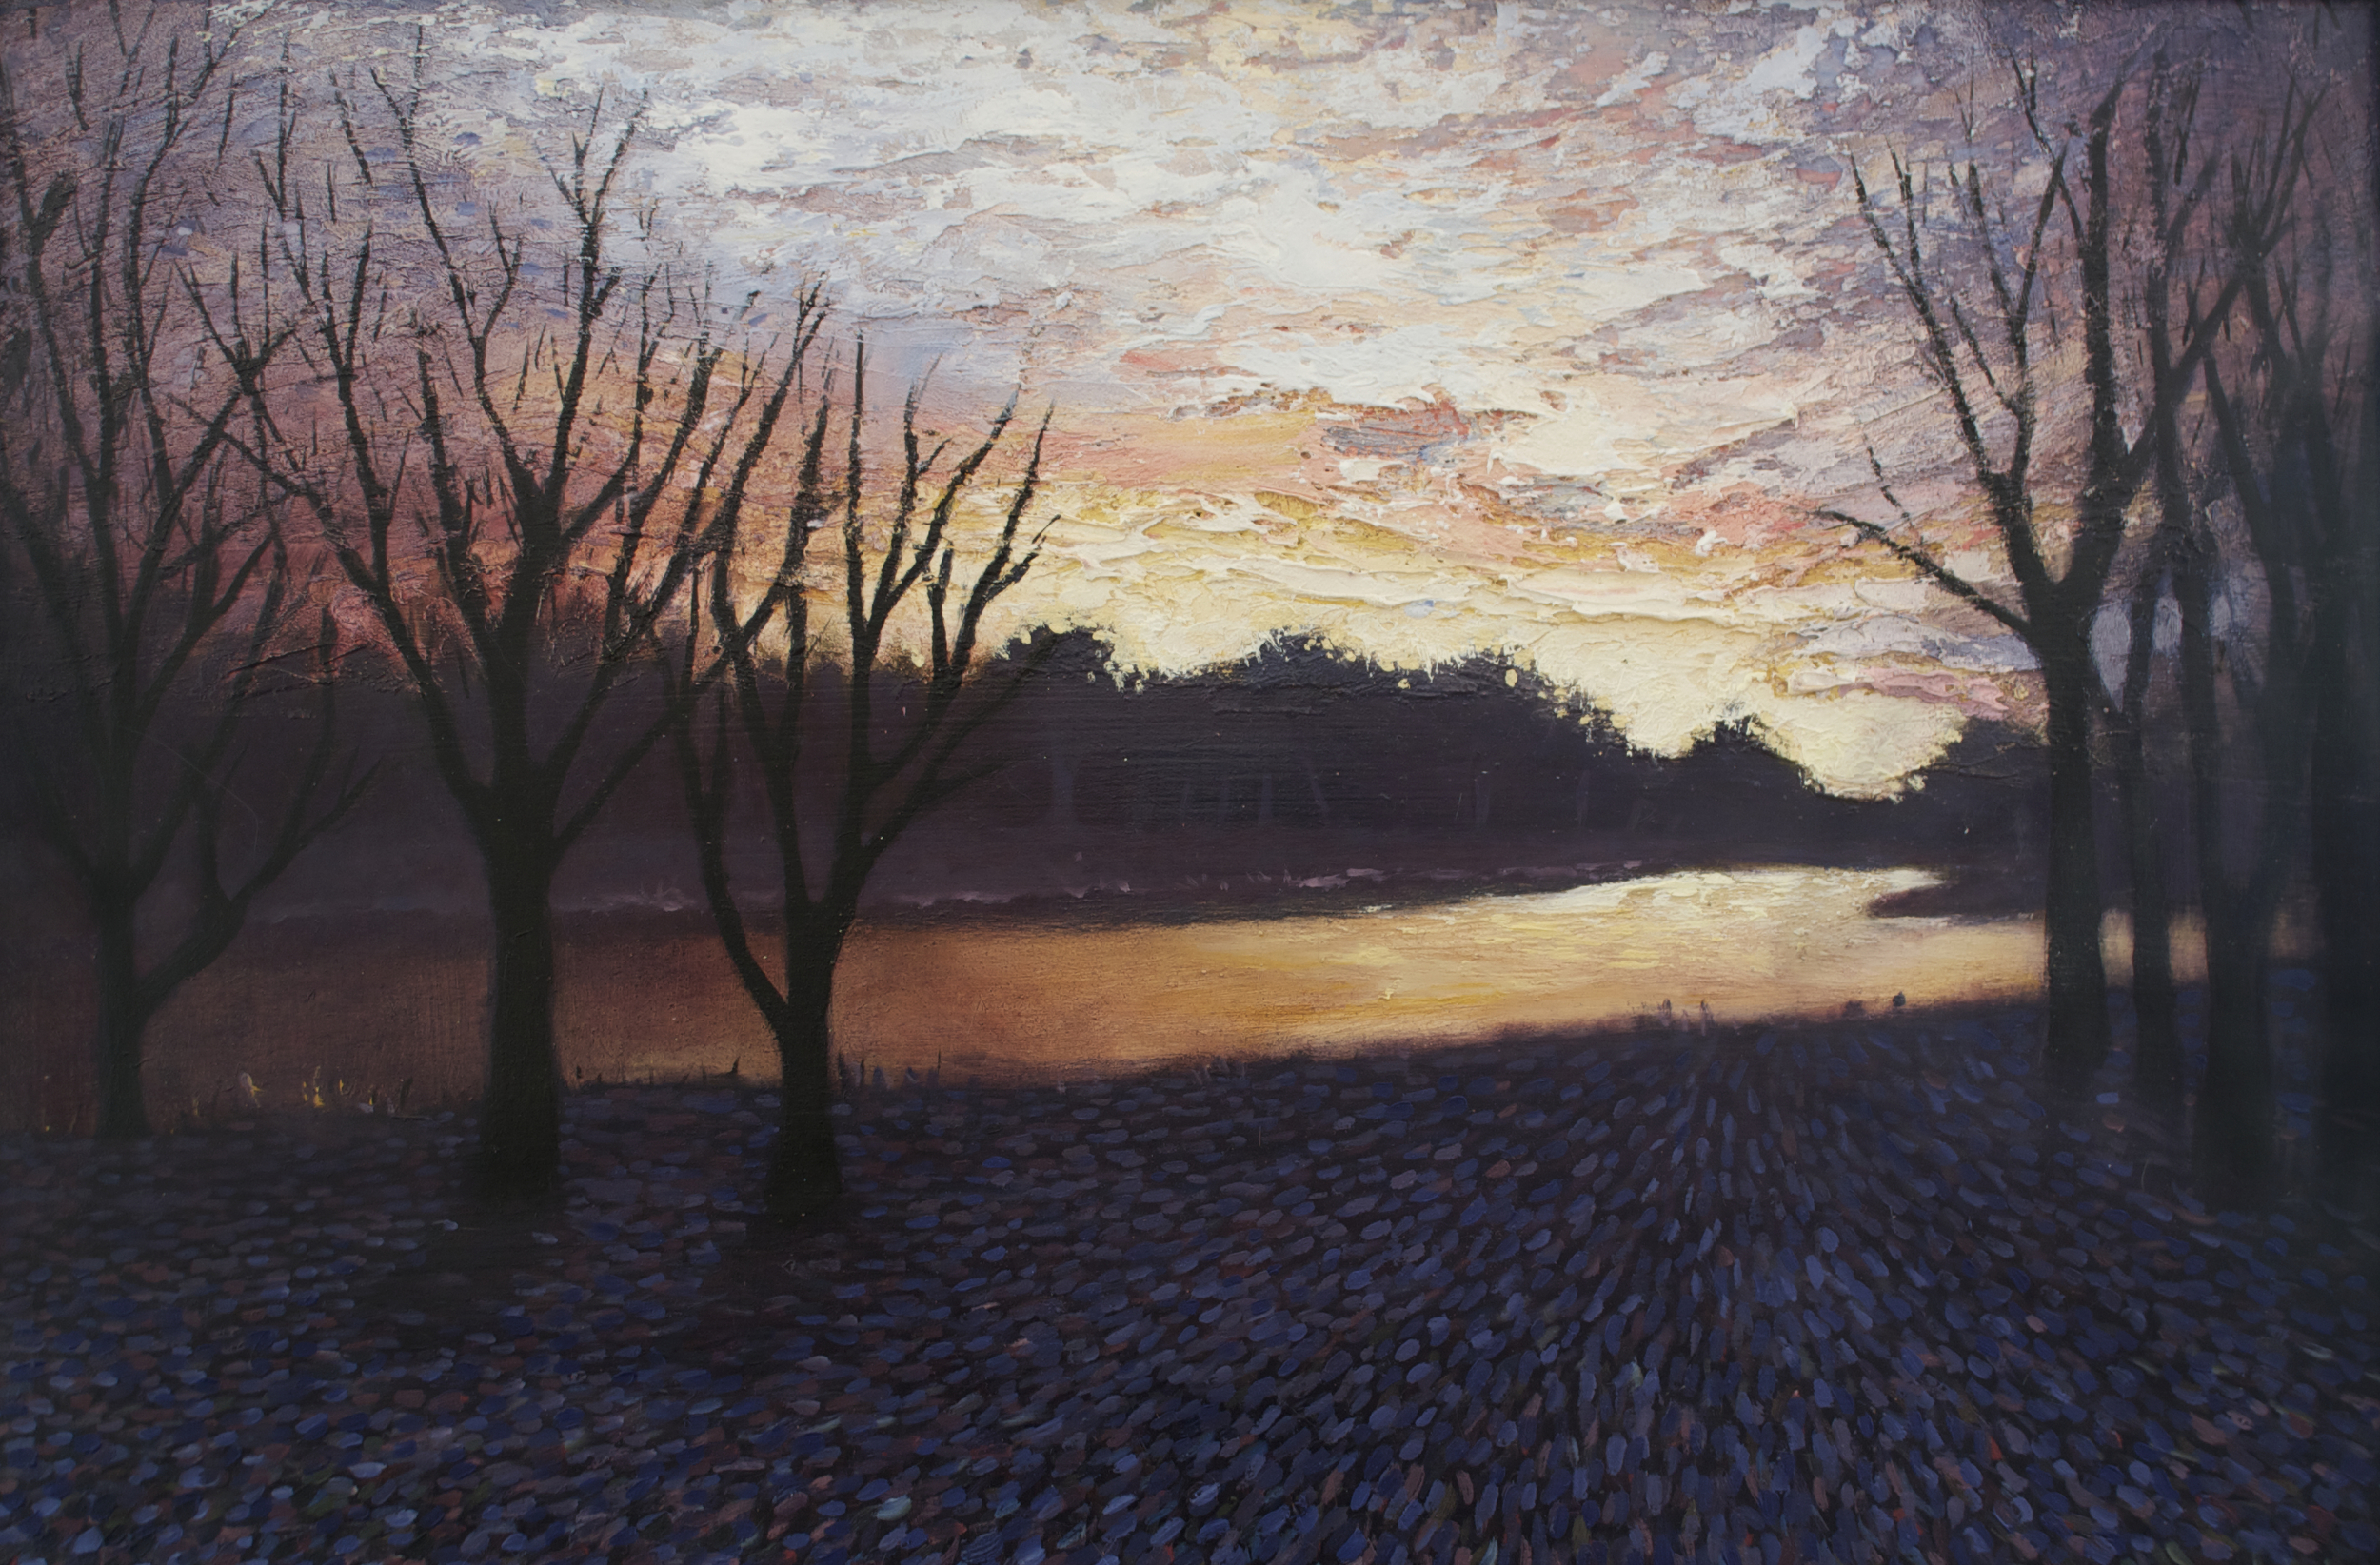 Winter's Light at Dusk (Available)